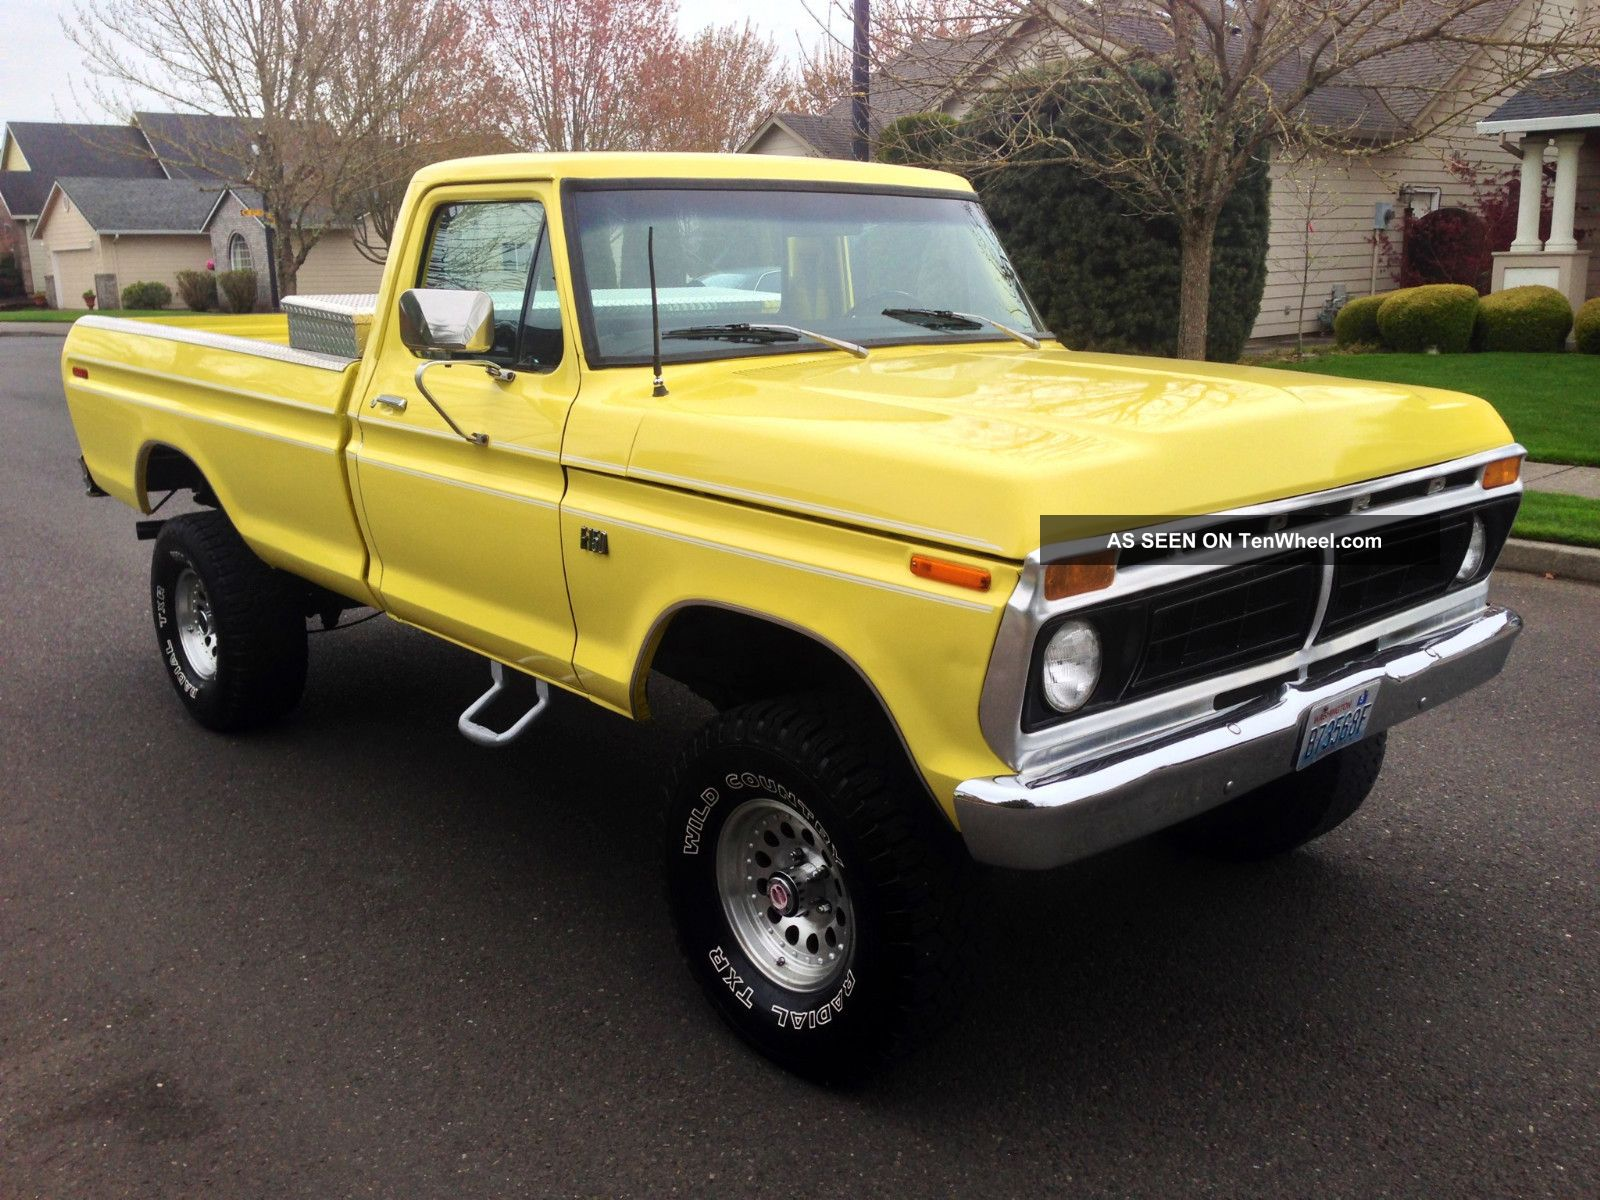 Ford f-150 1976 photo - 3